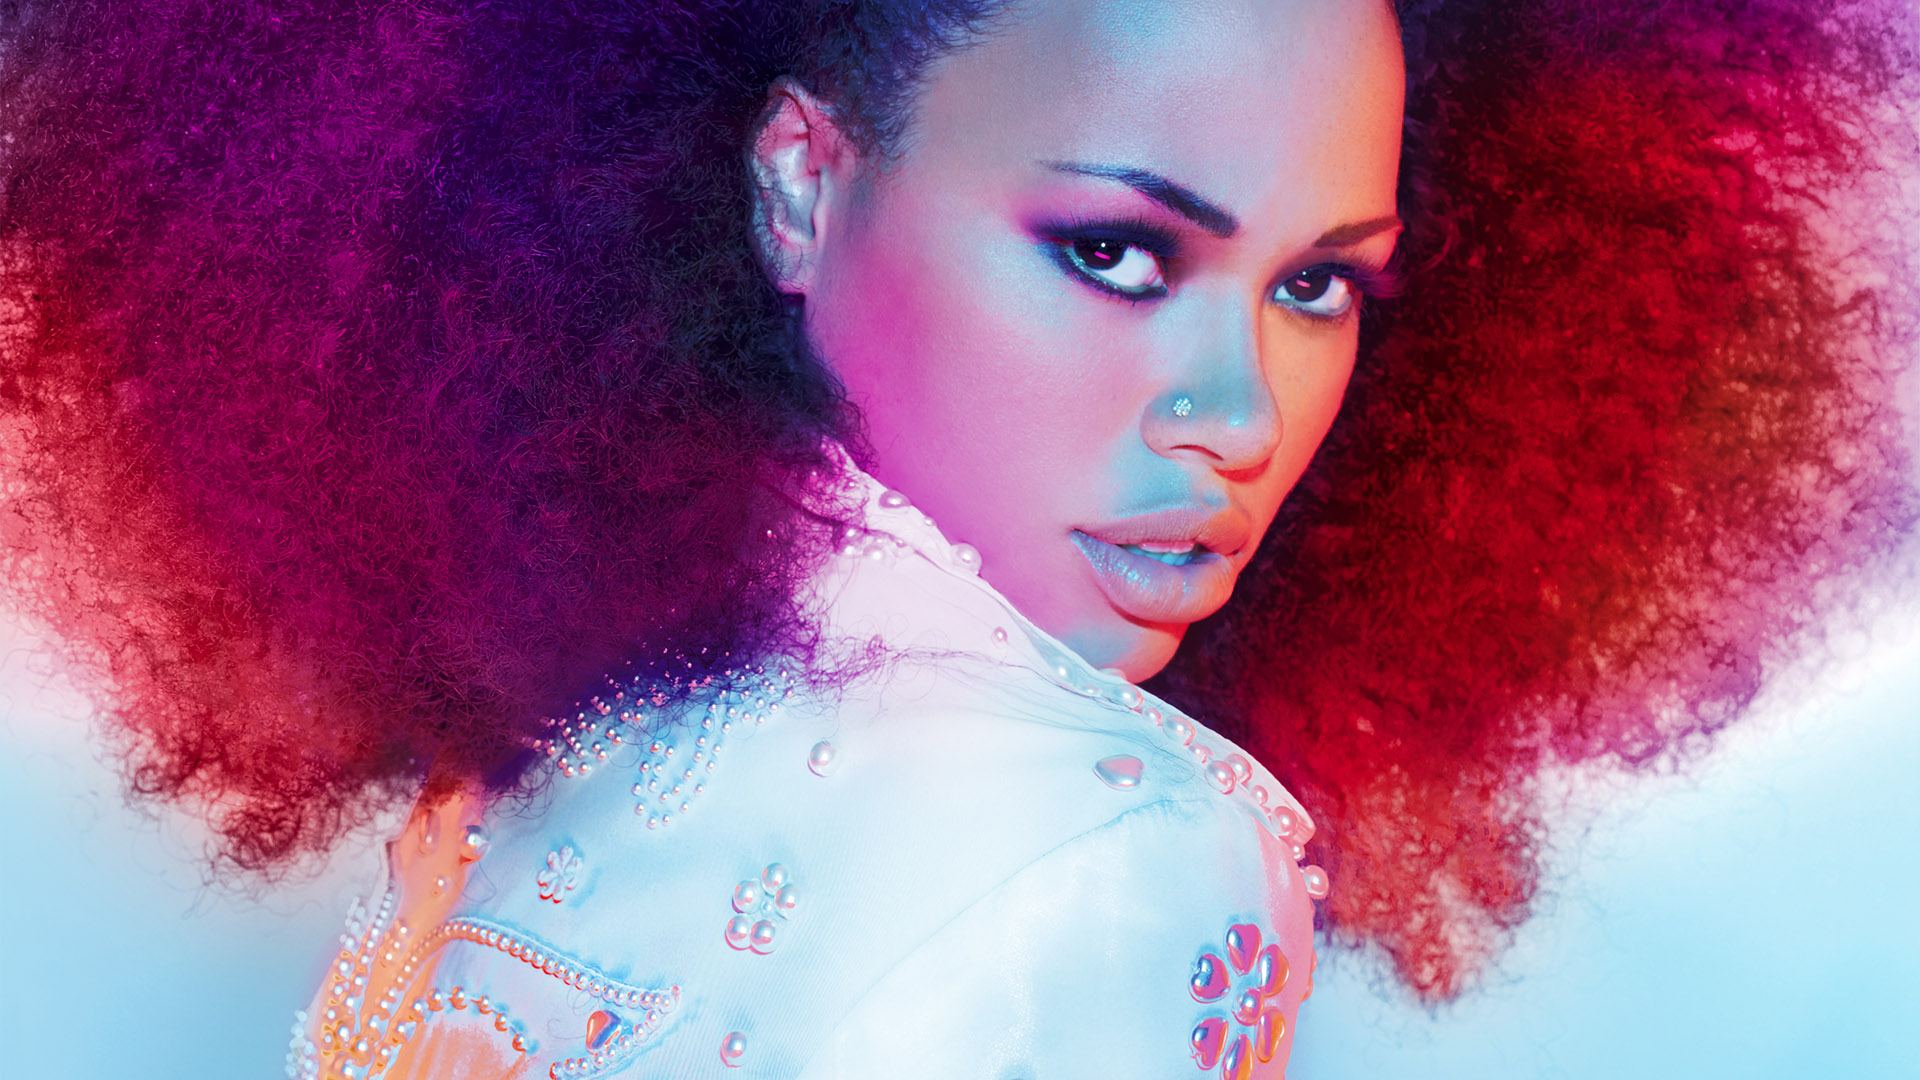 Refill (remix) by elle varner featuring kirko bangz & t-pain on.